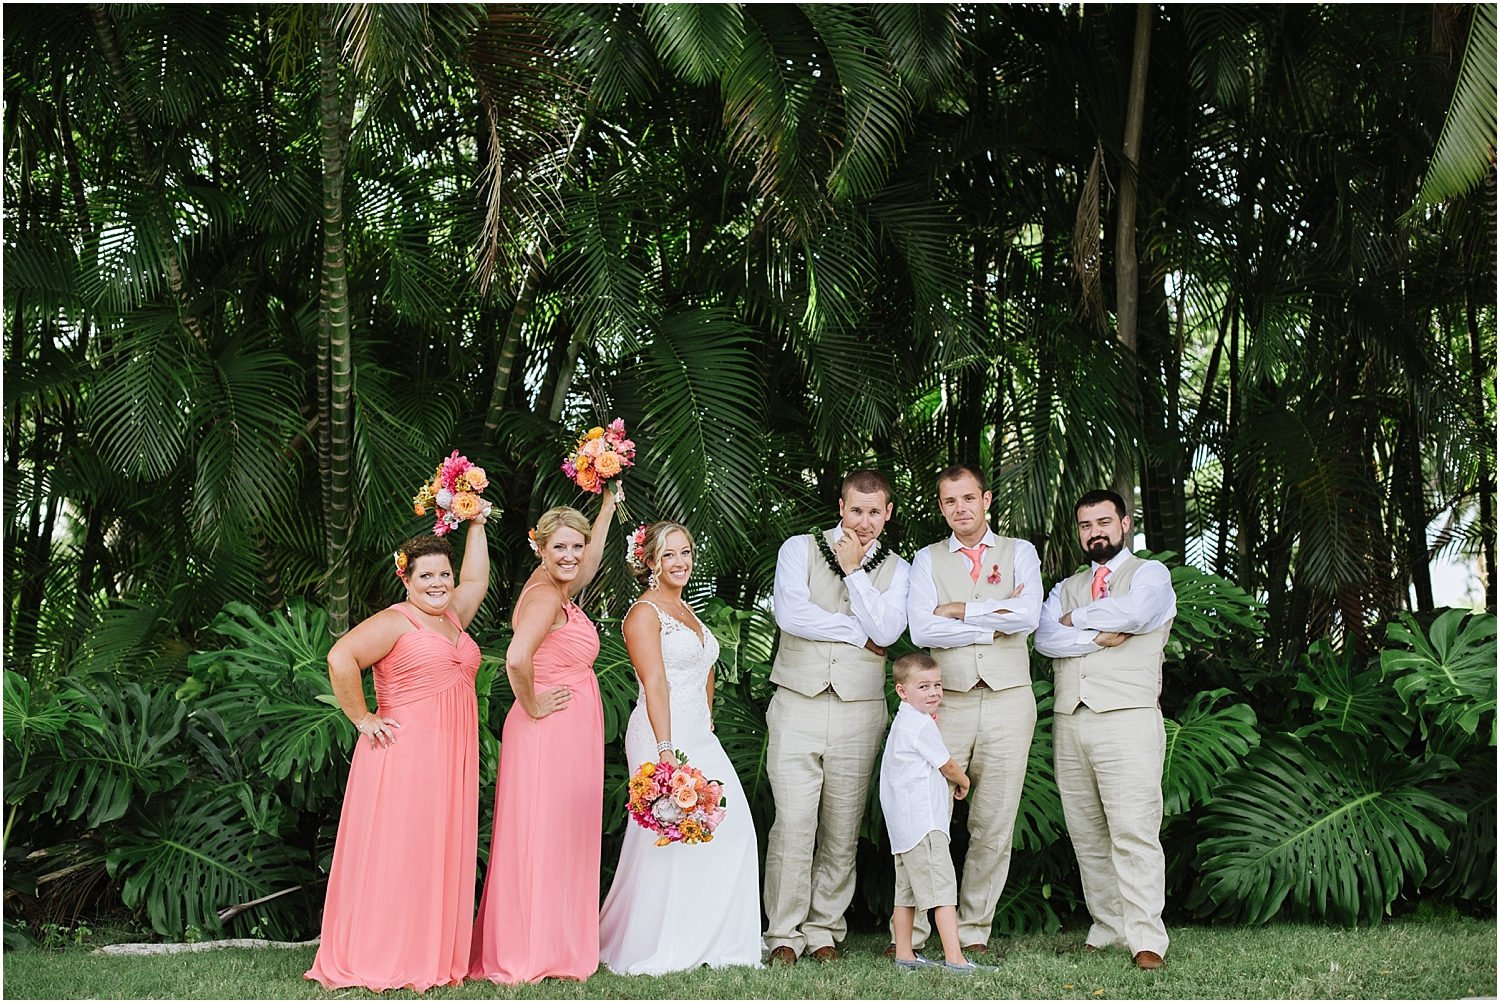 Maui Destination Wedding at Gannon's in Wailea, Hawaii